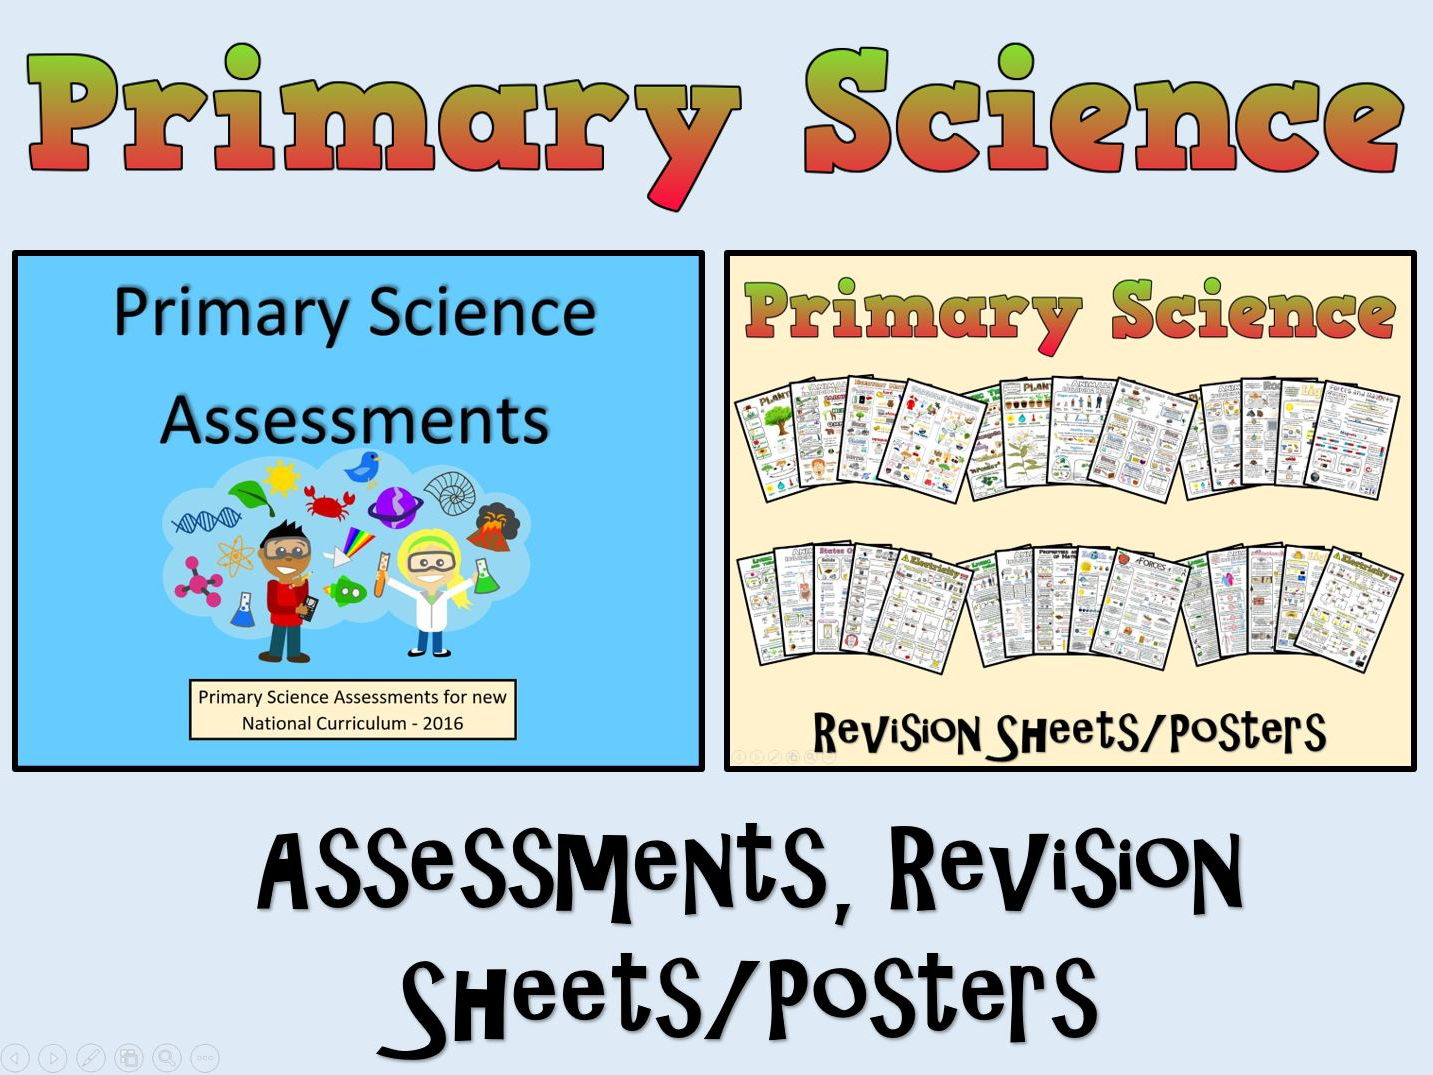 Primary Science Assessments + Posters/Revision Sheets